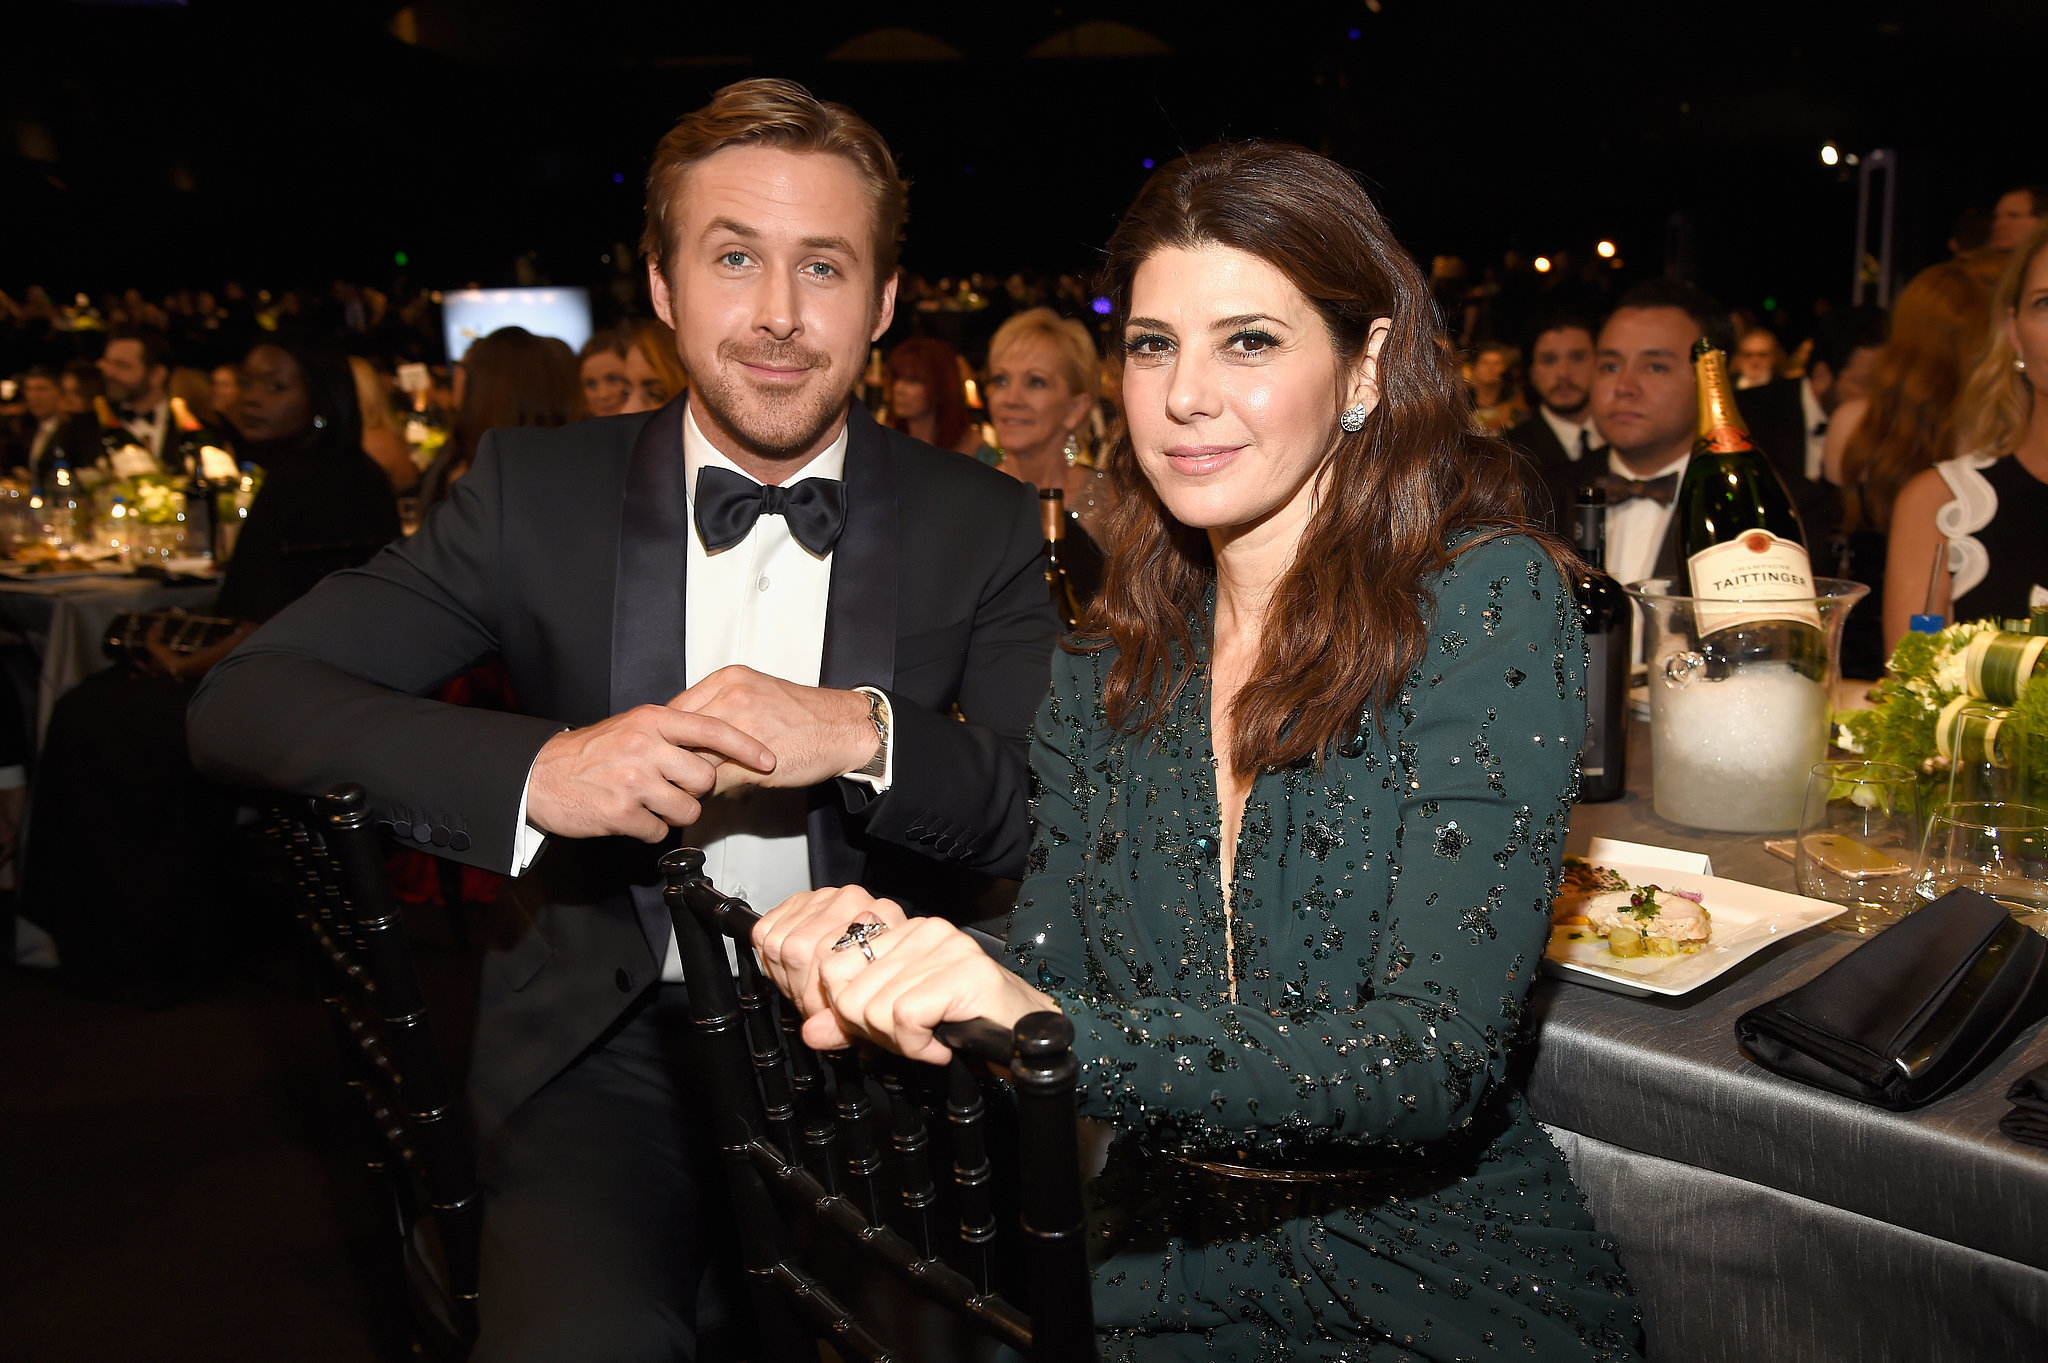 Ryan-Gosling-SAG-Awards-2016-1.jpg